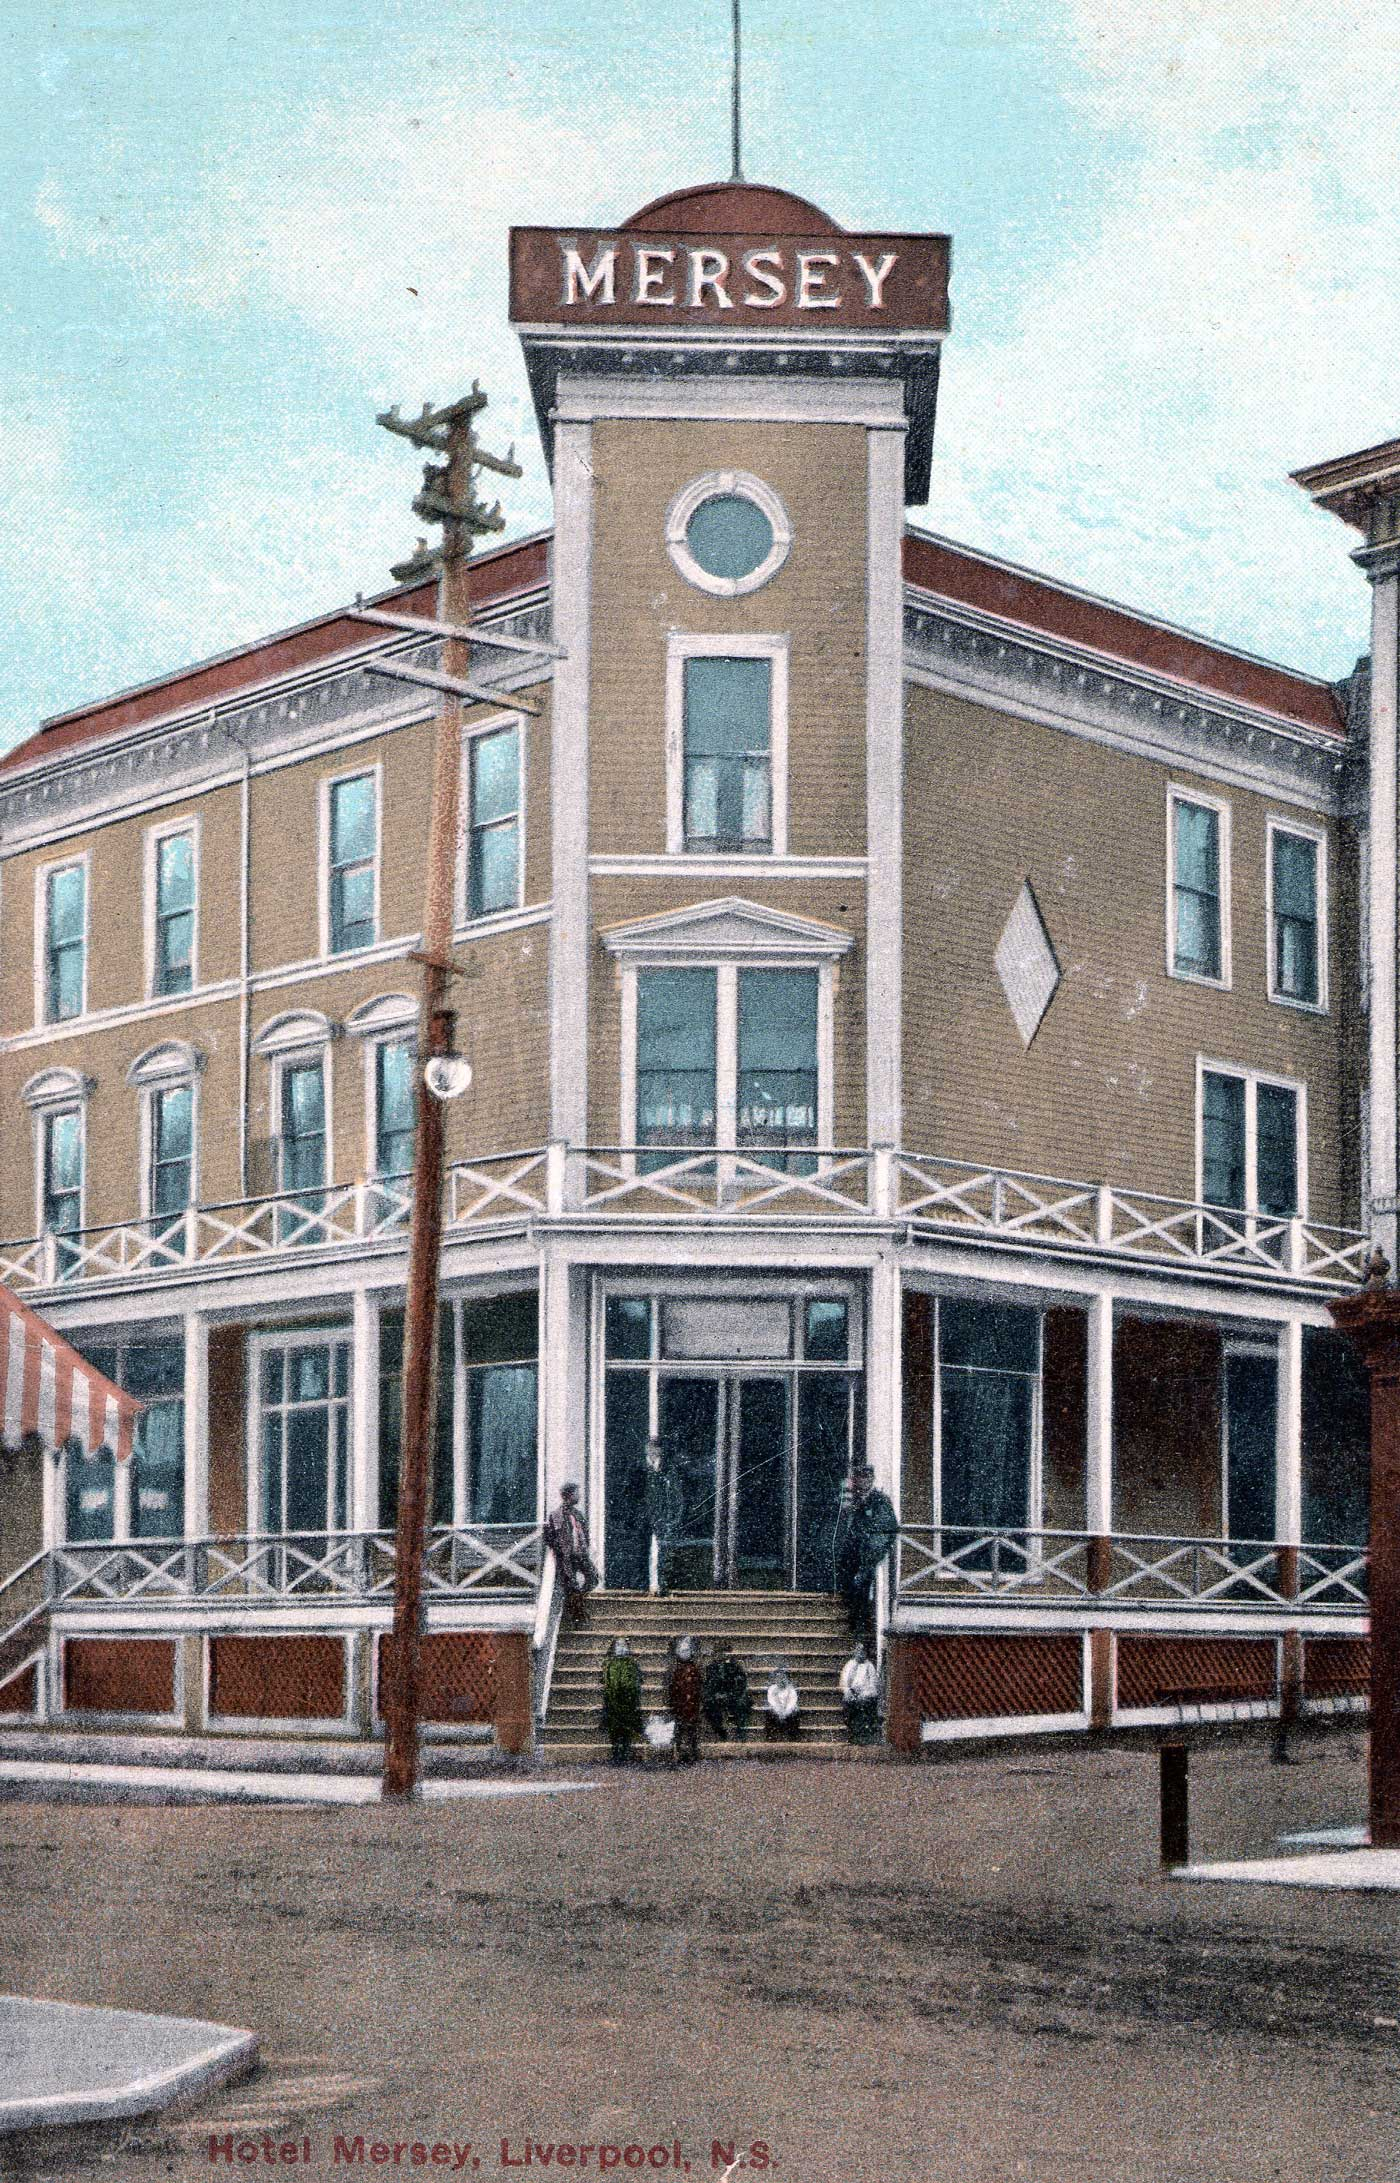 Hotel Mersey, Liverpool, NS